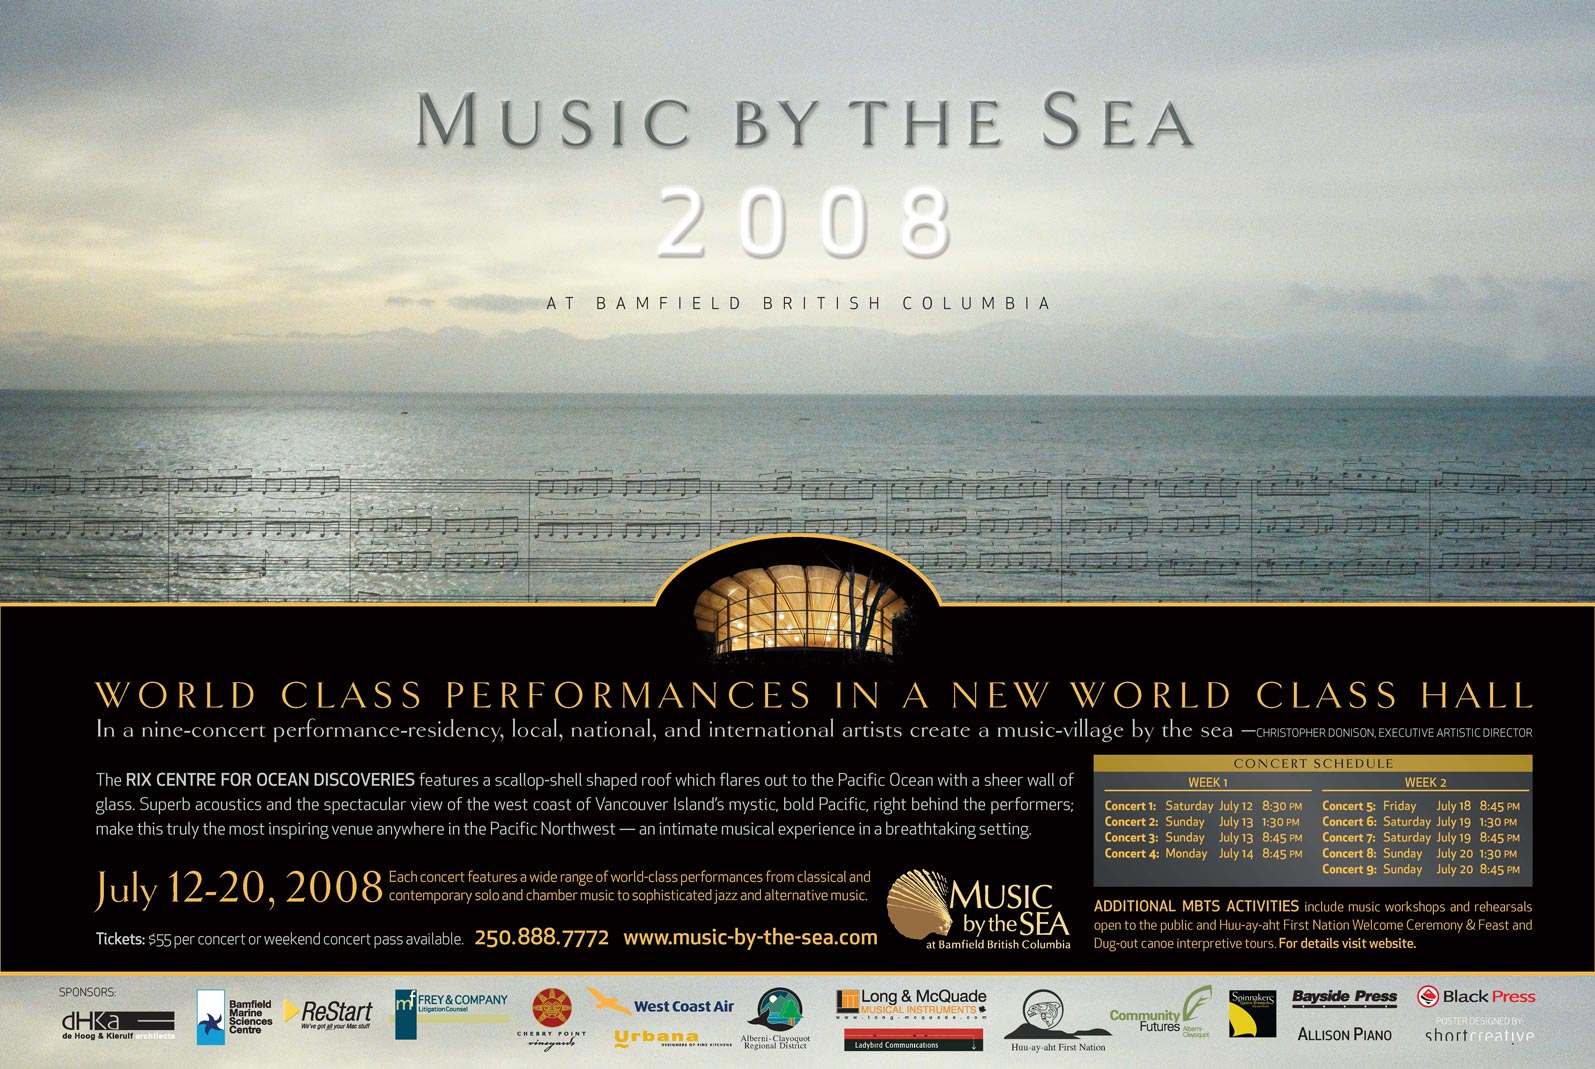 Music by the Sea 2008 poster